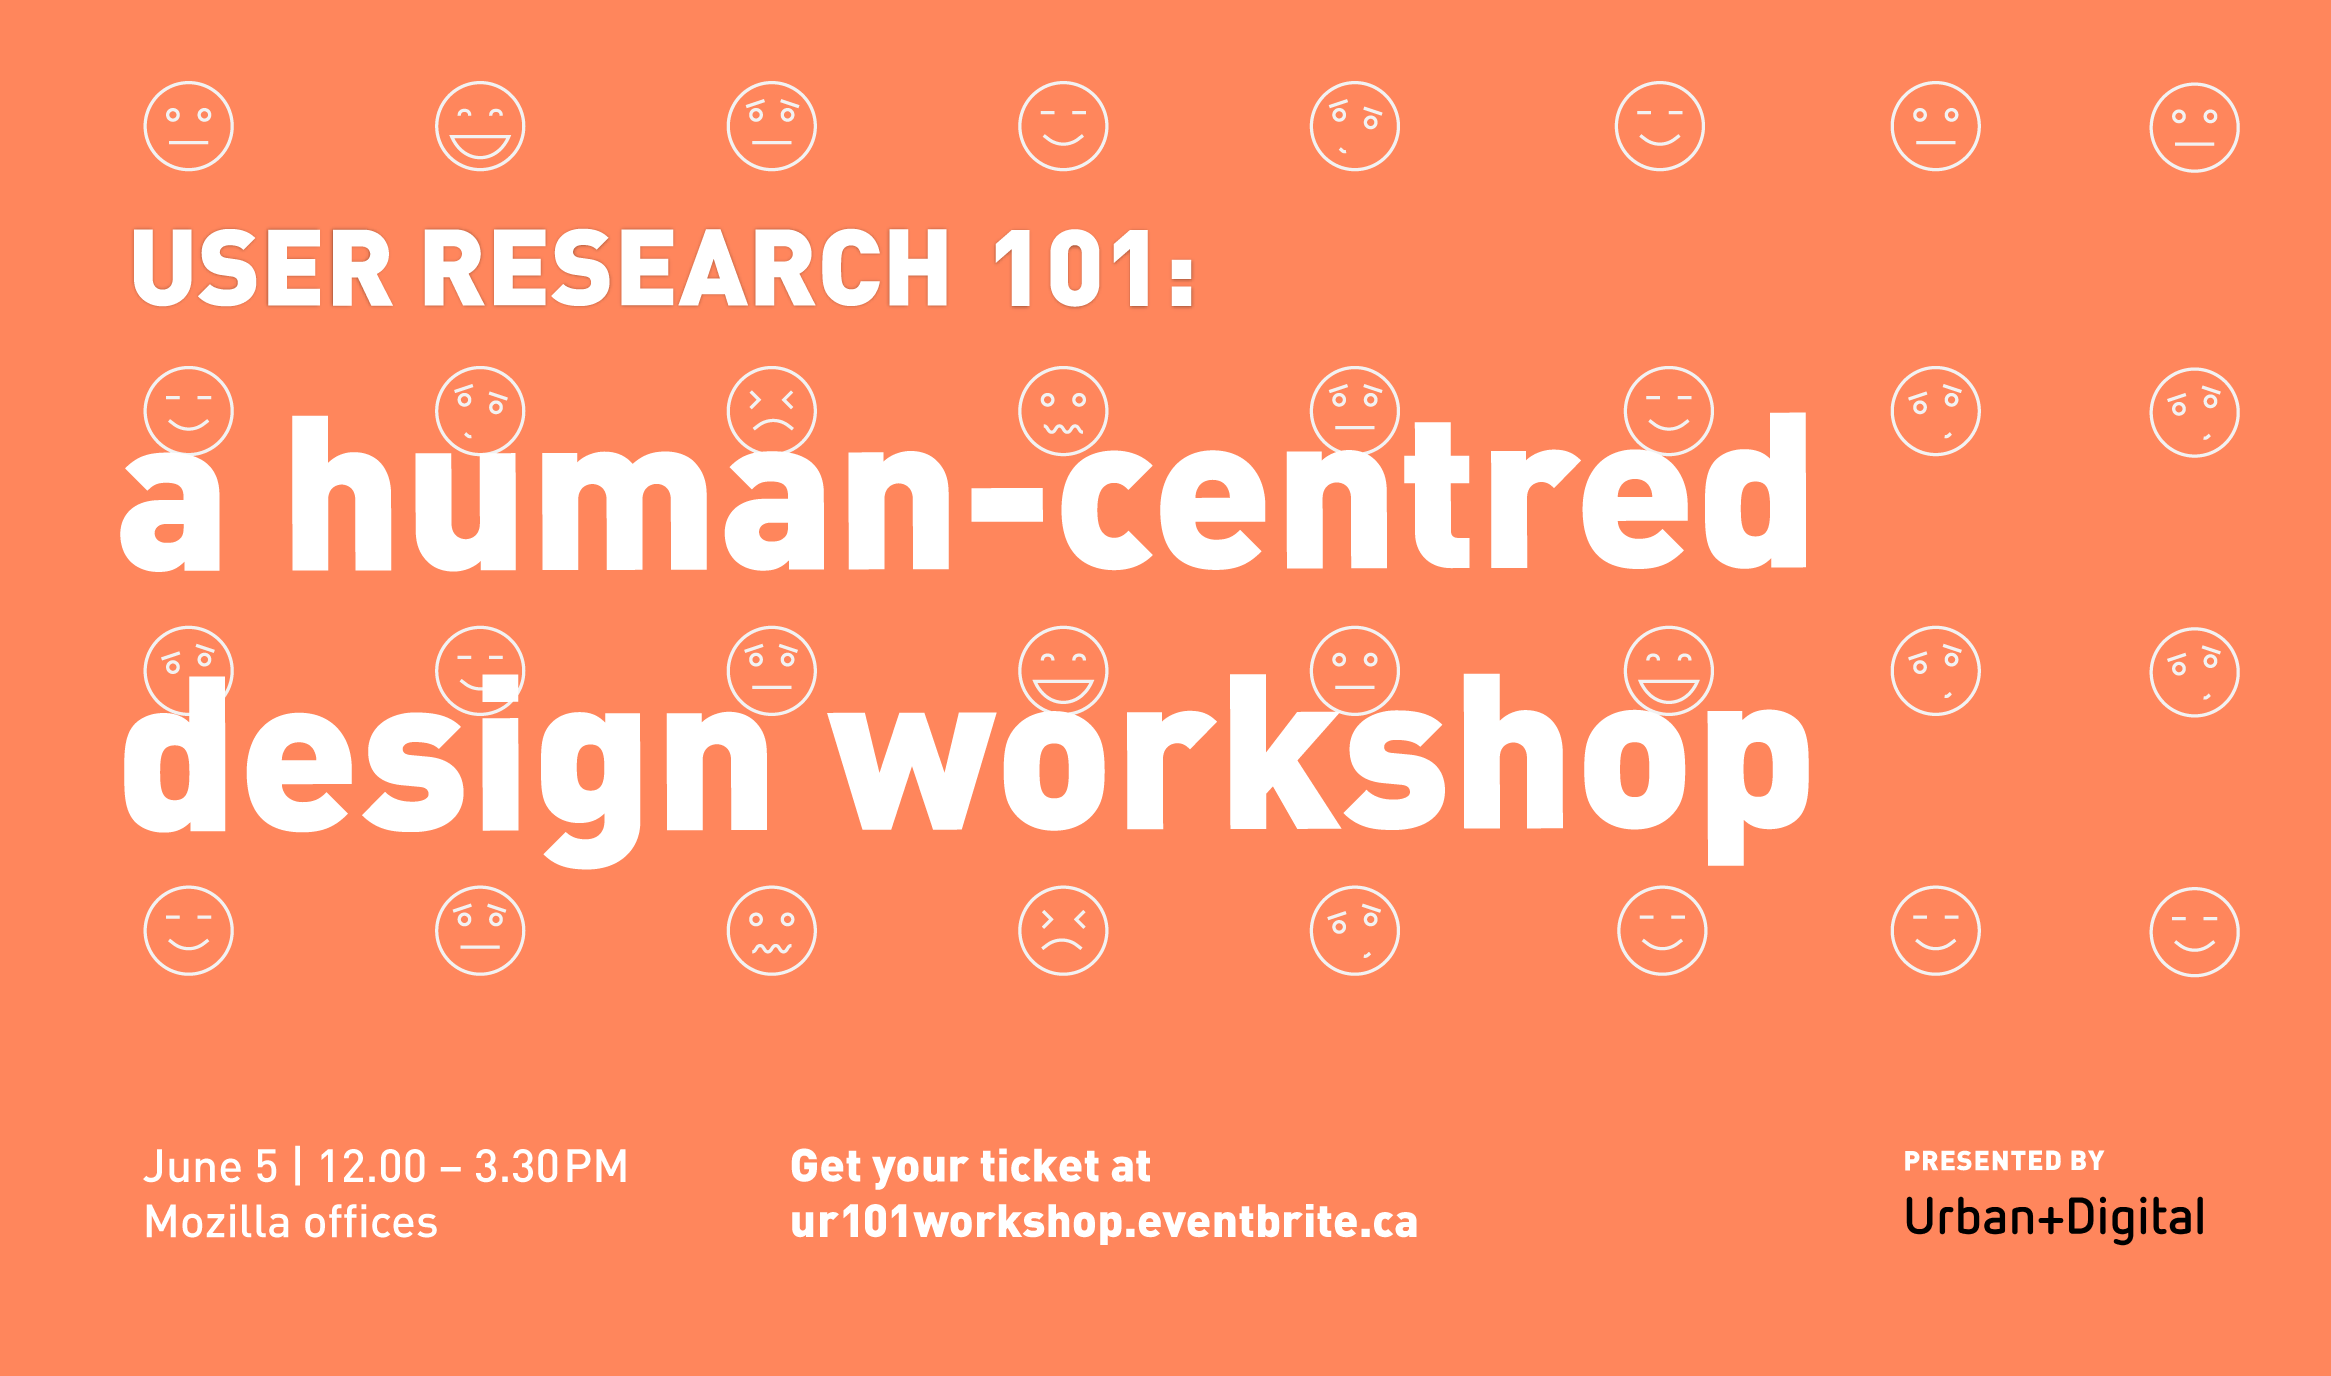 User Research 101: a human-centered design workshop